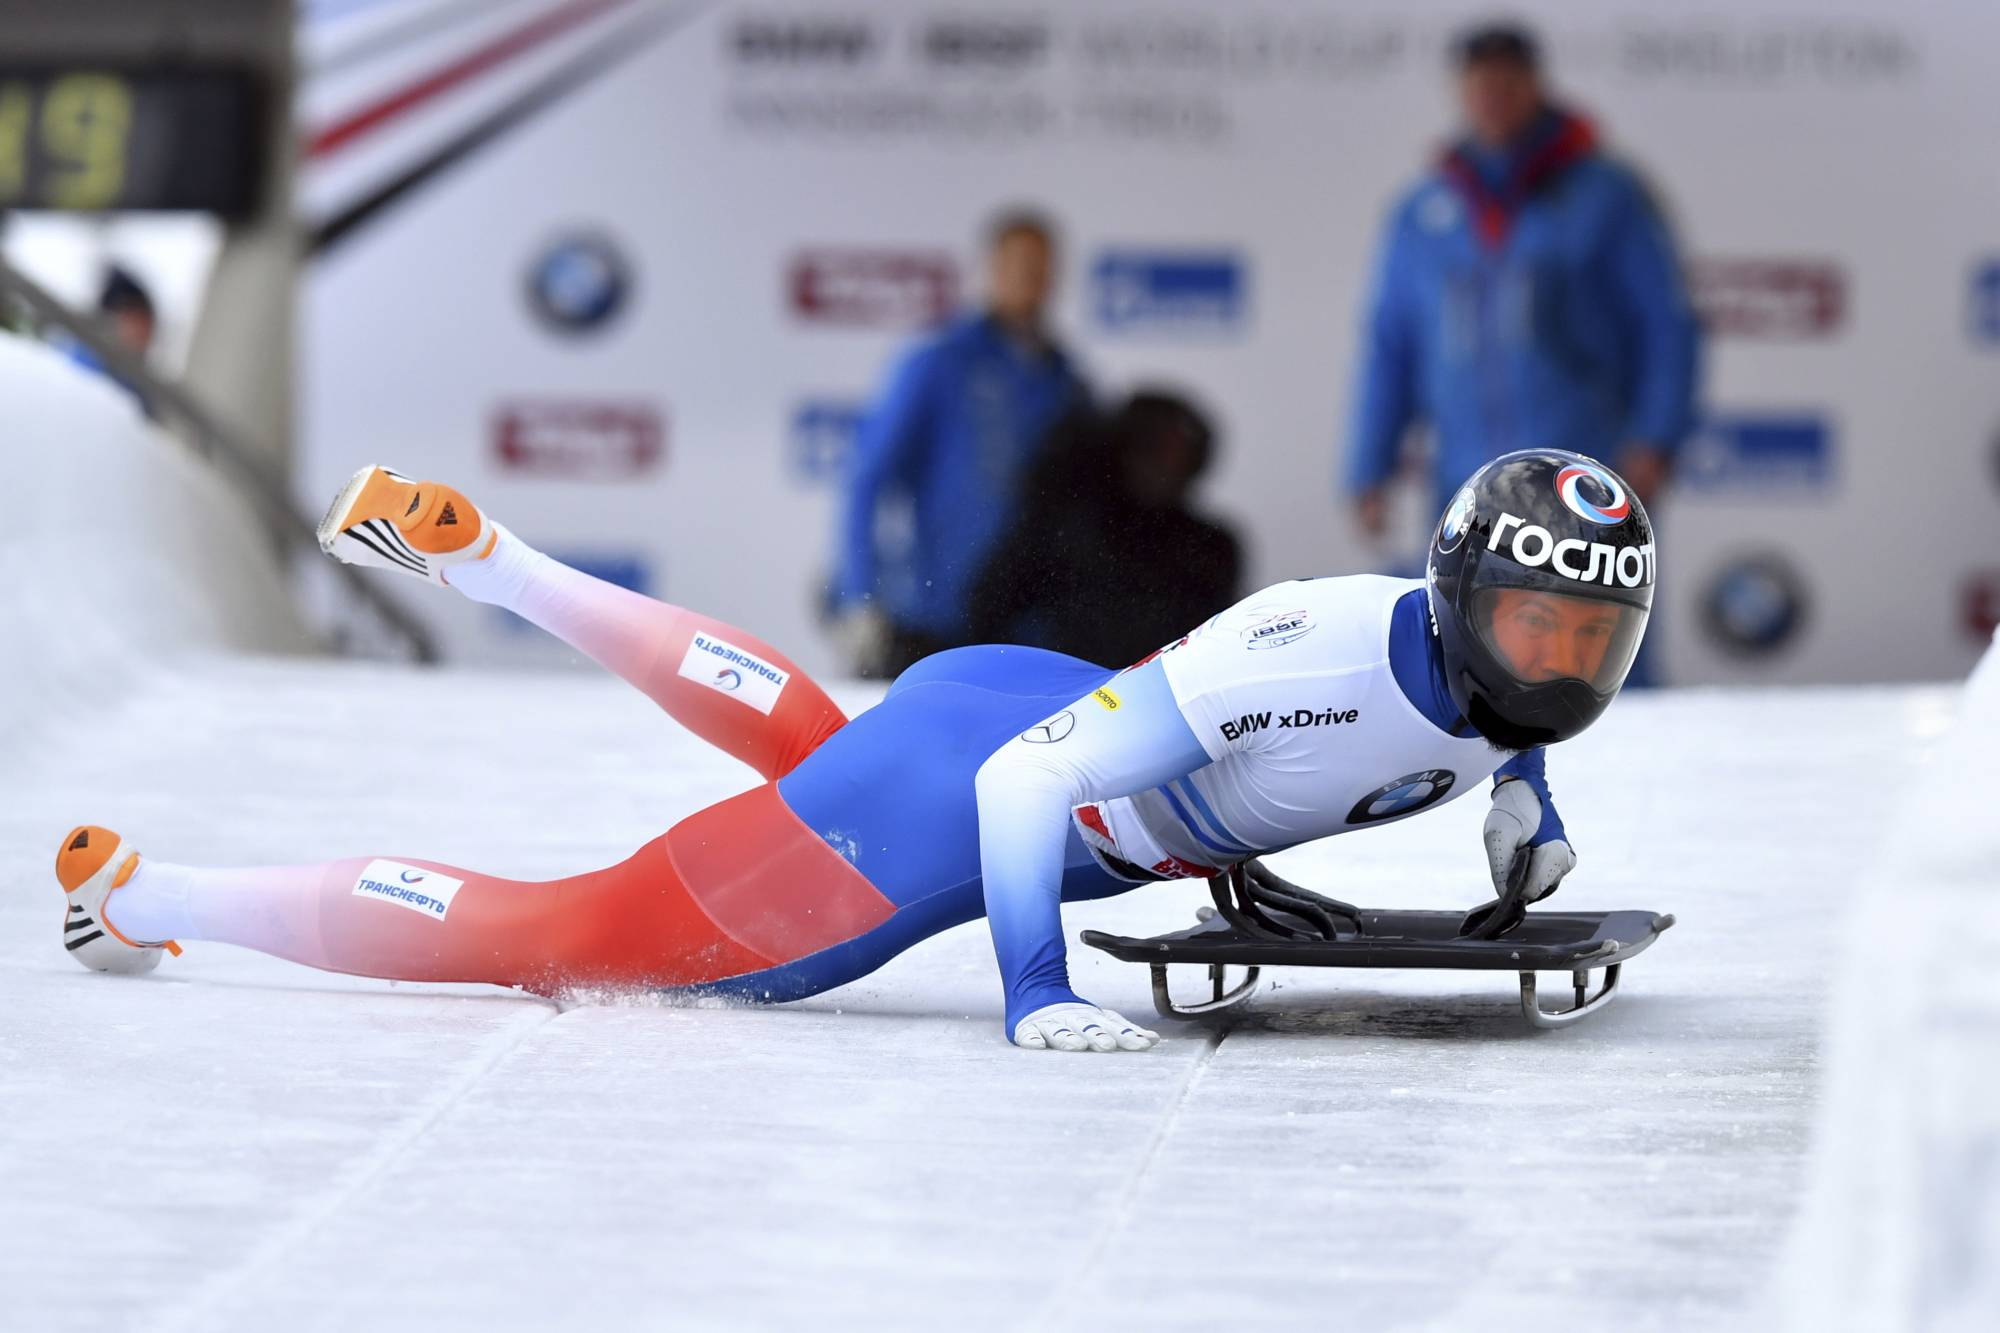 Uhlaender: 'The integrity of sport' at stake over doping ...